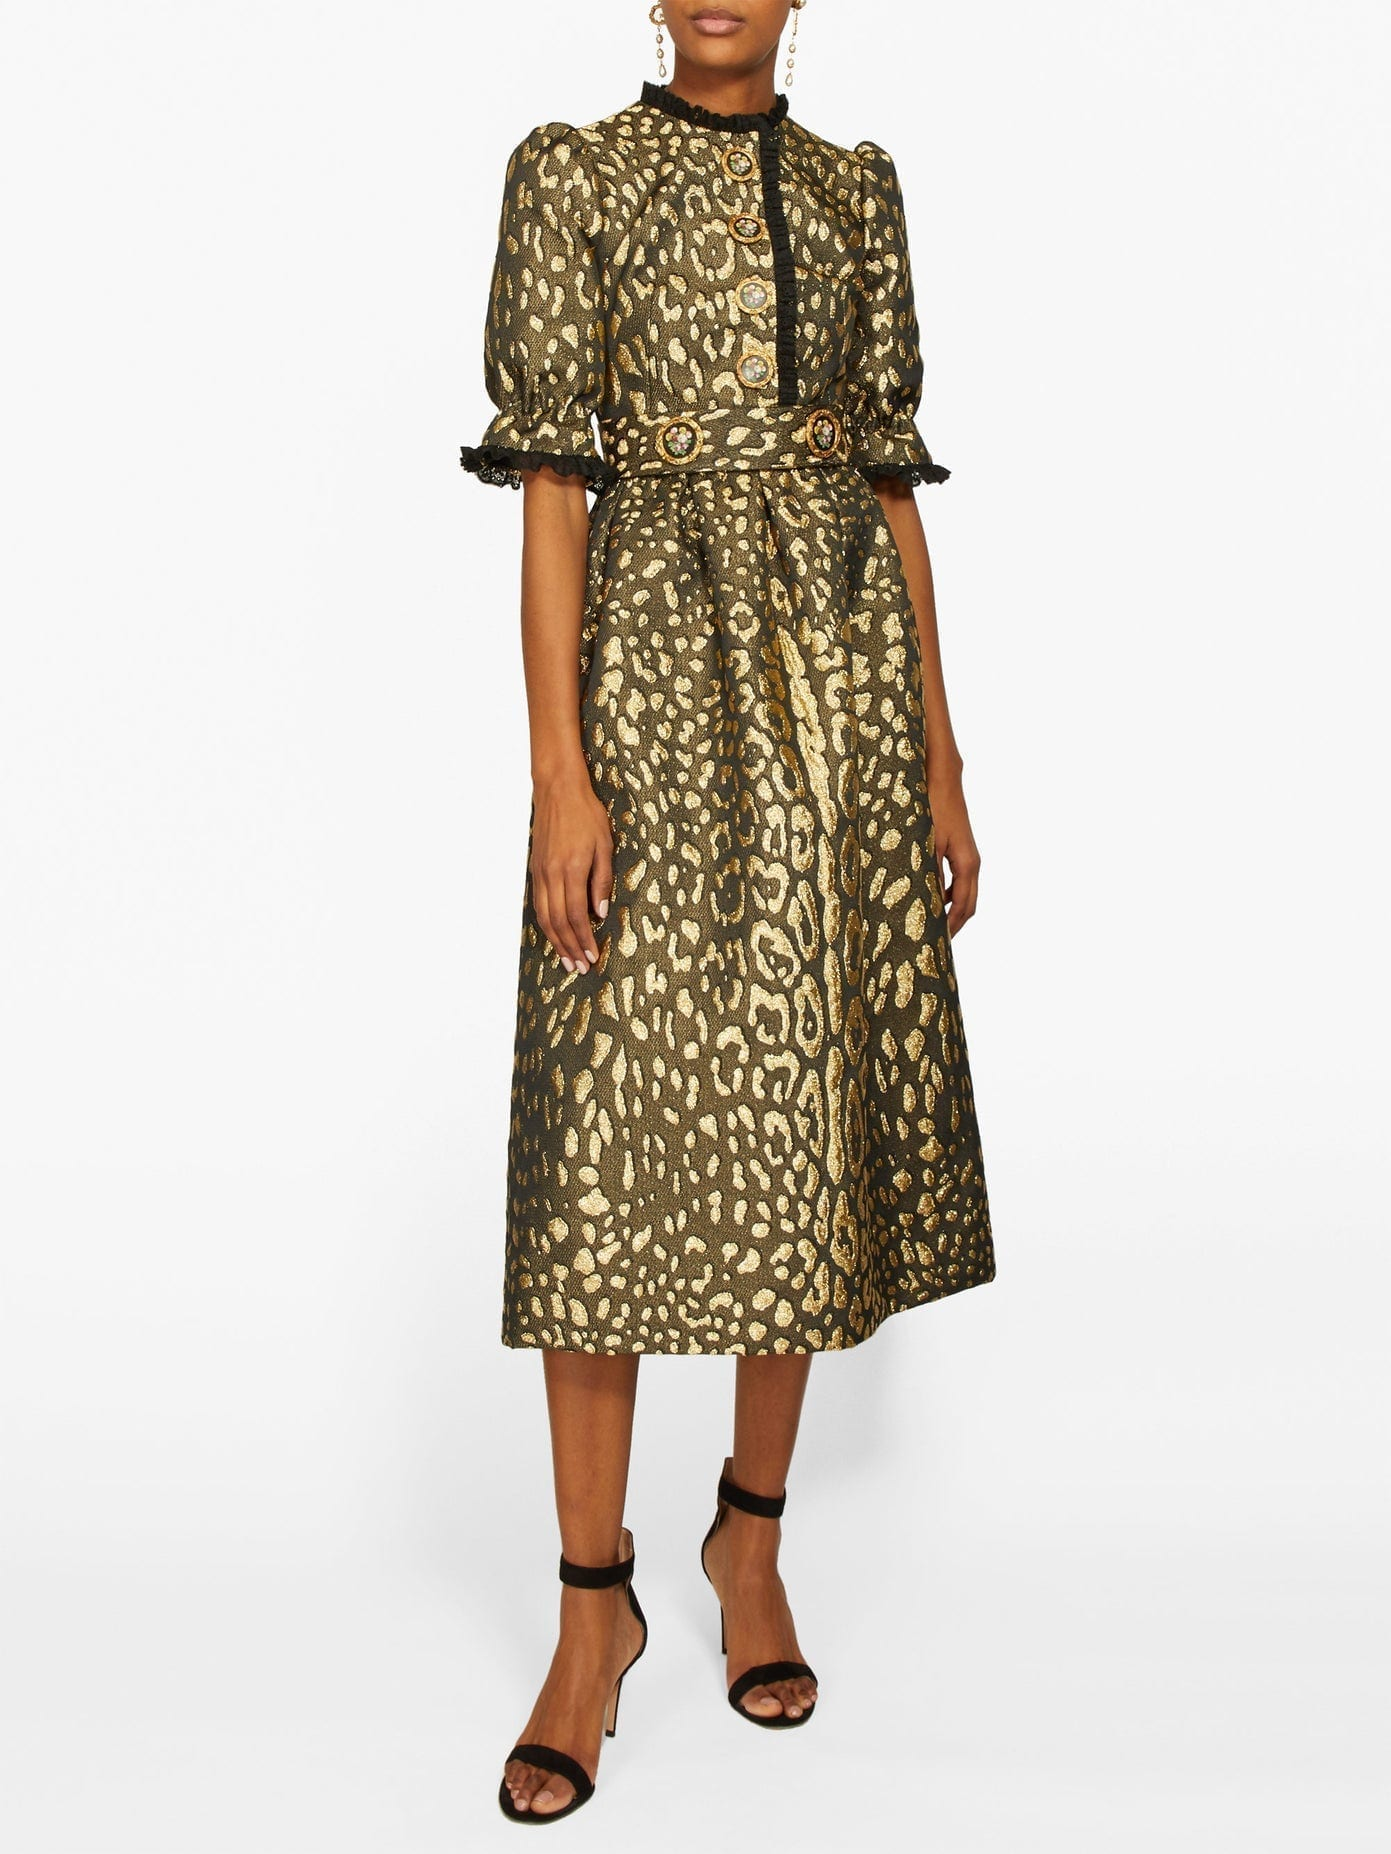 DOLCE & GABBANA Puffed-sleeve Leopard-brocade Midi Dress